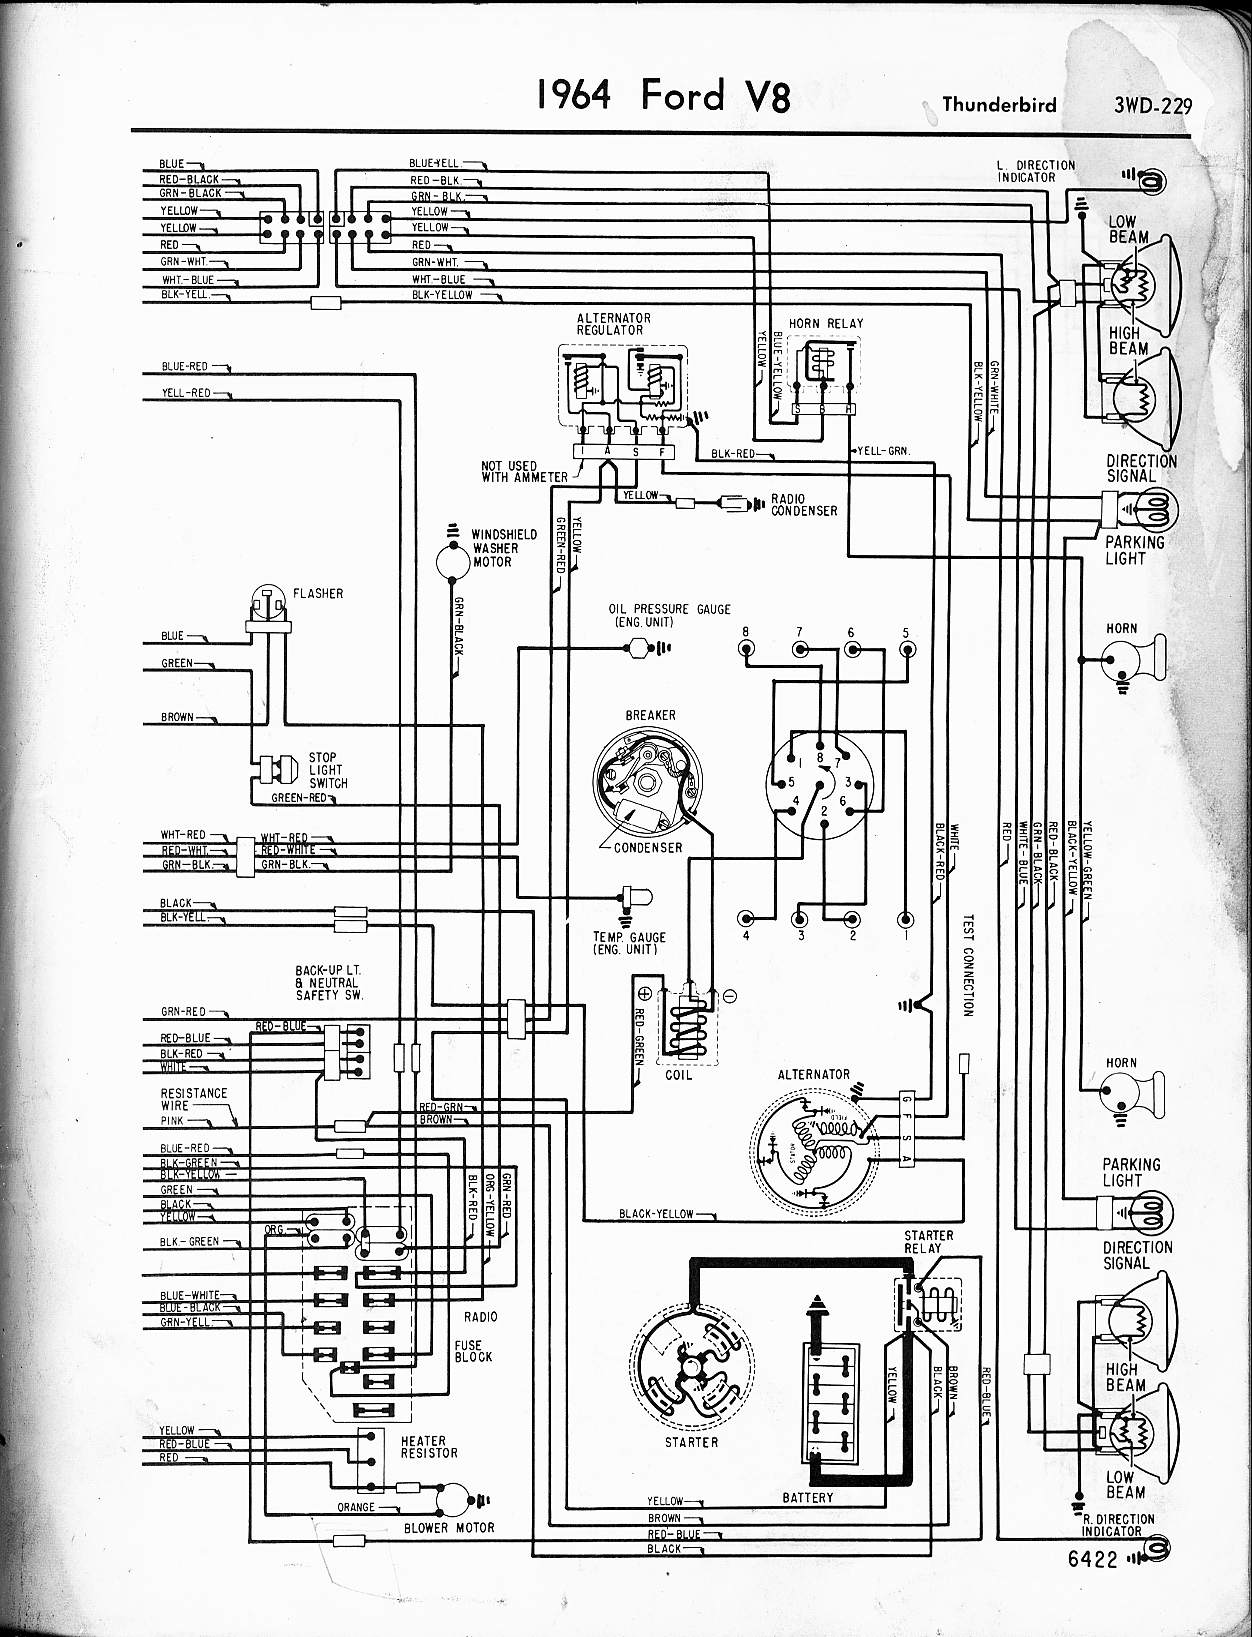 HE_0914] Ford Ignition Switch Wiring Diagram 1964 Ford Falcon Fuse Box  Diagram Free DiagramRious Ogram Benol Ittab Unpr Faun Hapolo Mohammedshrine Librar Wiring 101